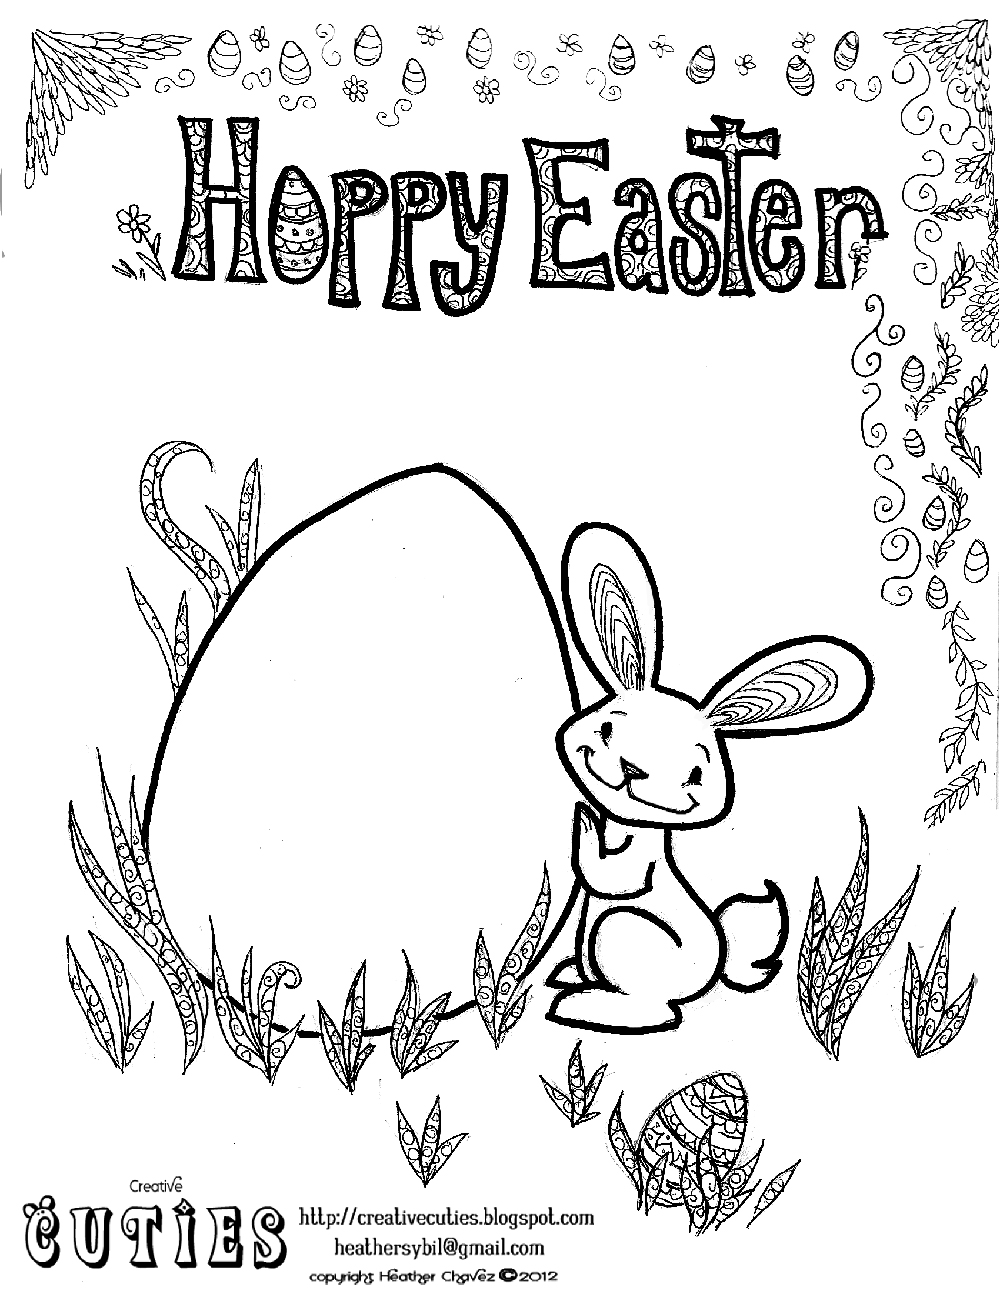 heather chavez easter bunny coloring page